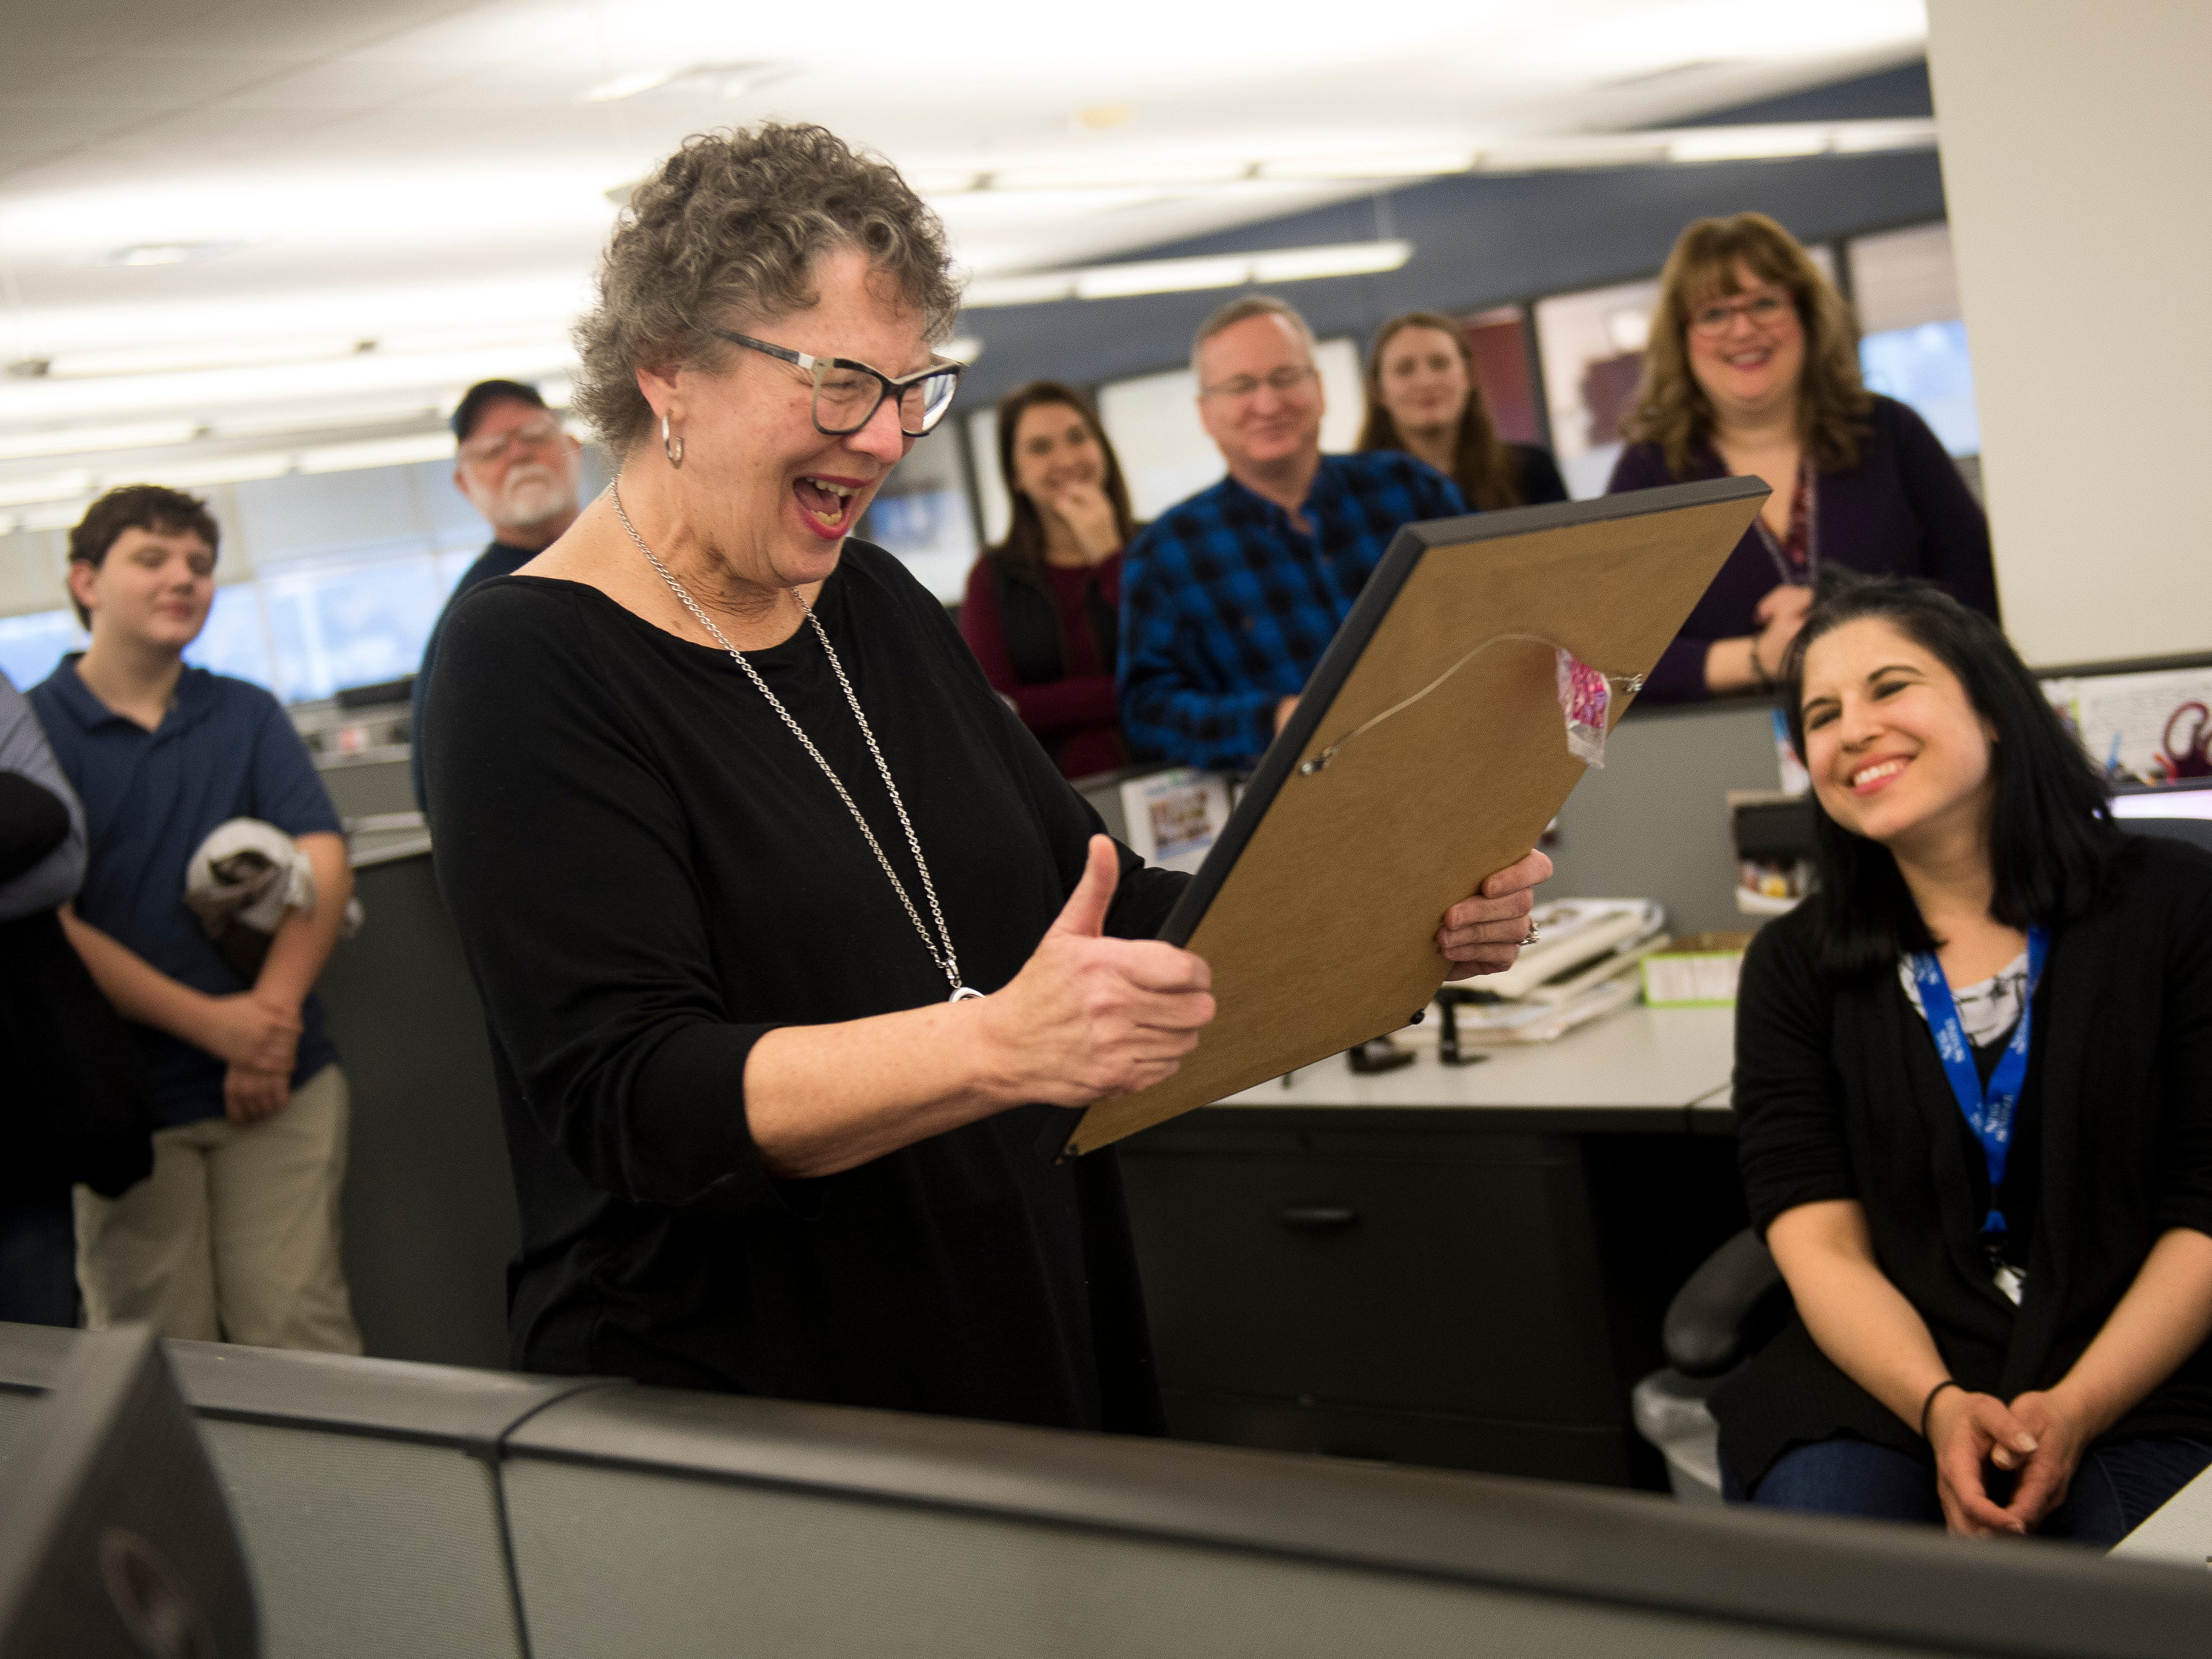 Features writer Mary Constantine reacts to her custom Charlie Daniel cartoon during a retirement party on Wednesday, January 2, 2019. The Knoxville News Sentinel celebrated the retirements of Mary Constantine, Jack Lail and Michael Patrick.